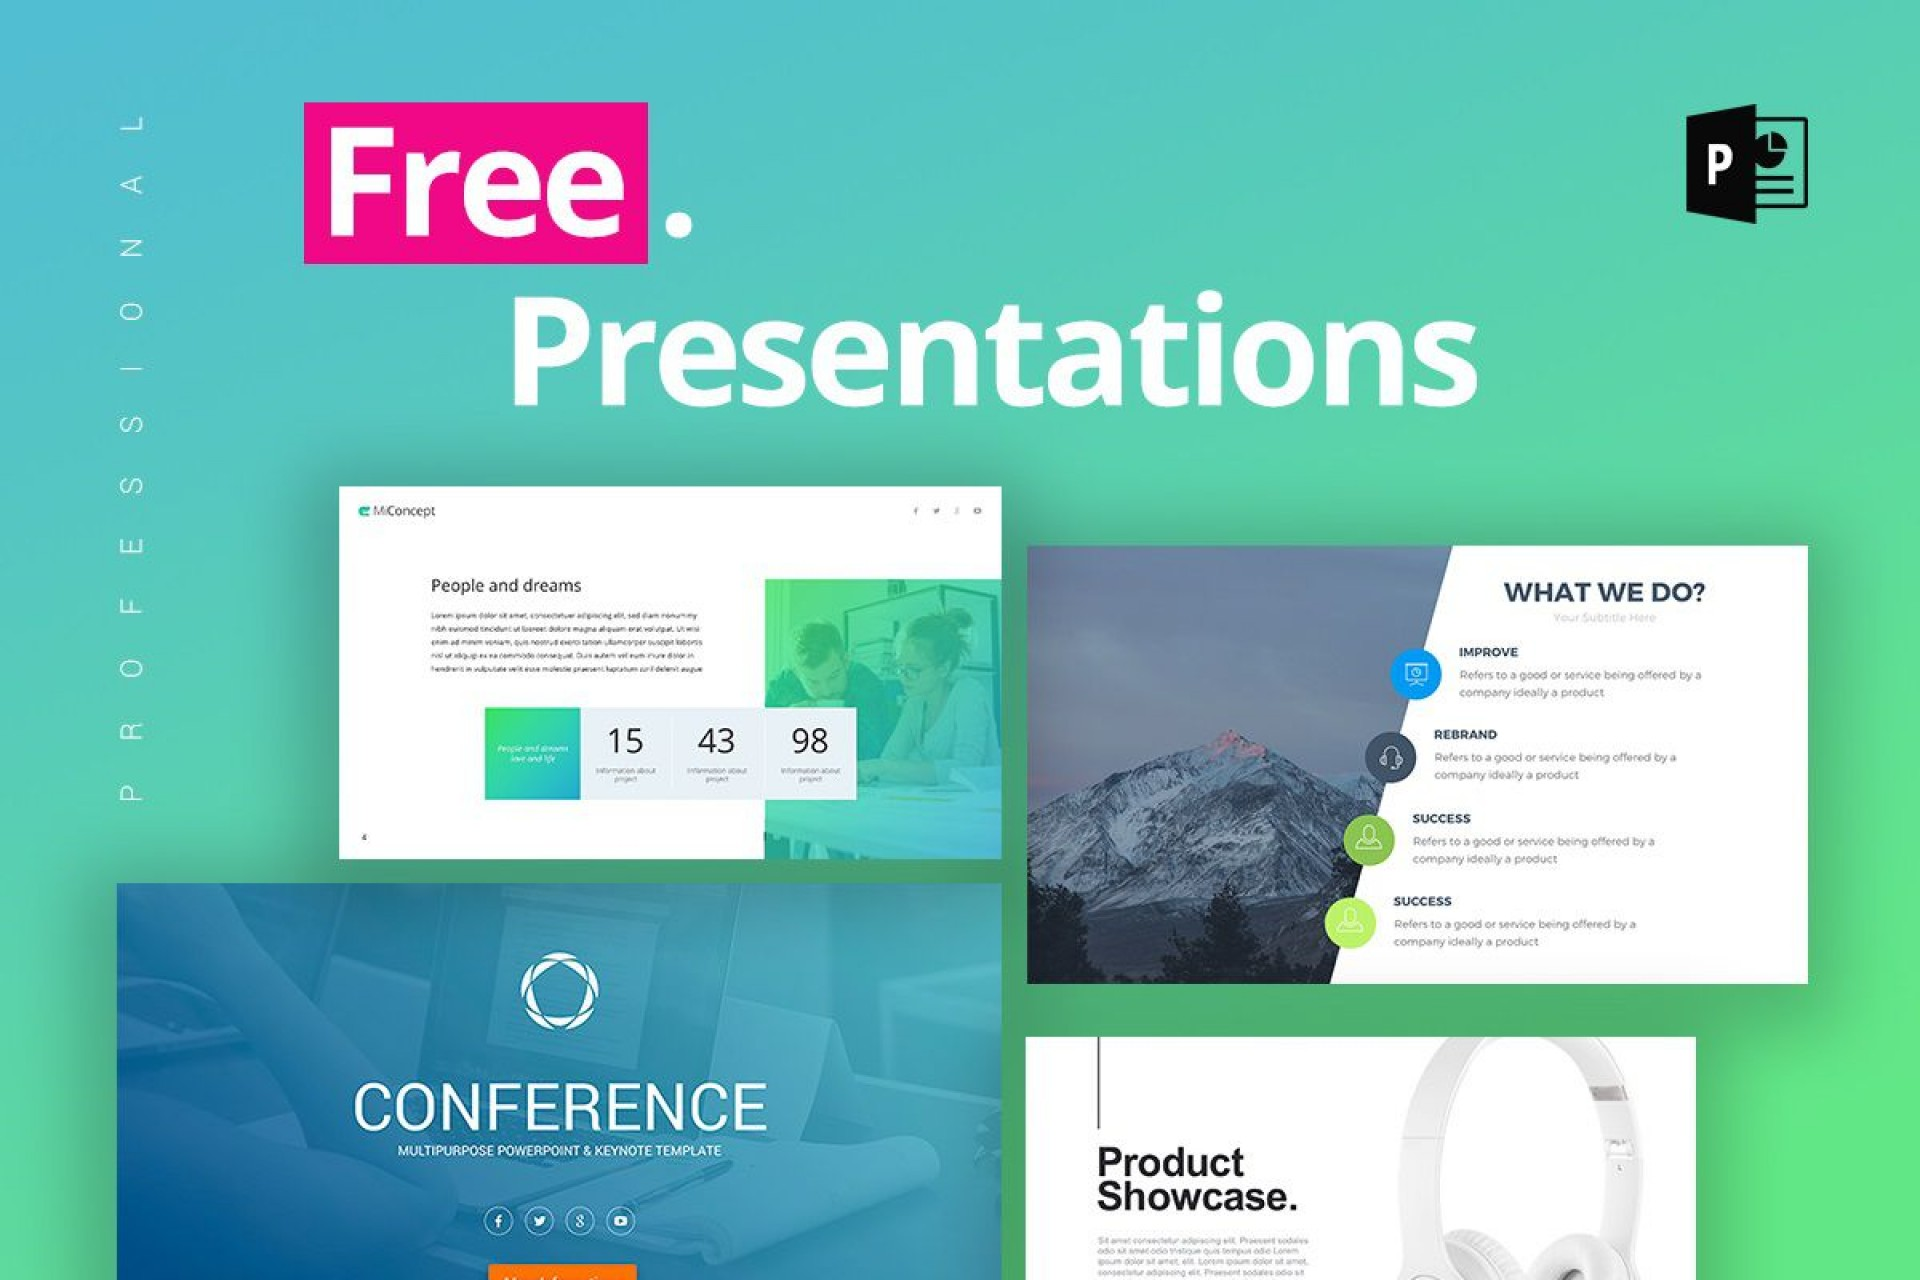 007 Top Free Powerpoint Presentation Template Concept  Templates 22 Slide For The Perfect Busines Strategy Download Engineering1920